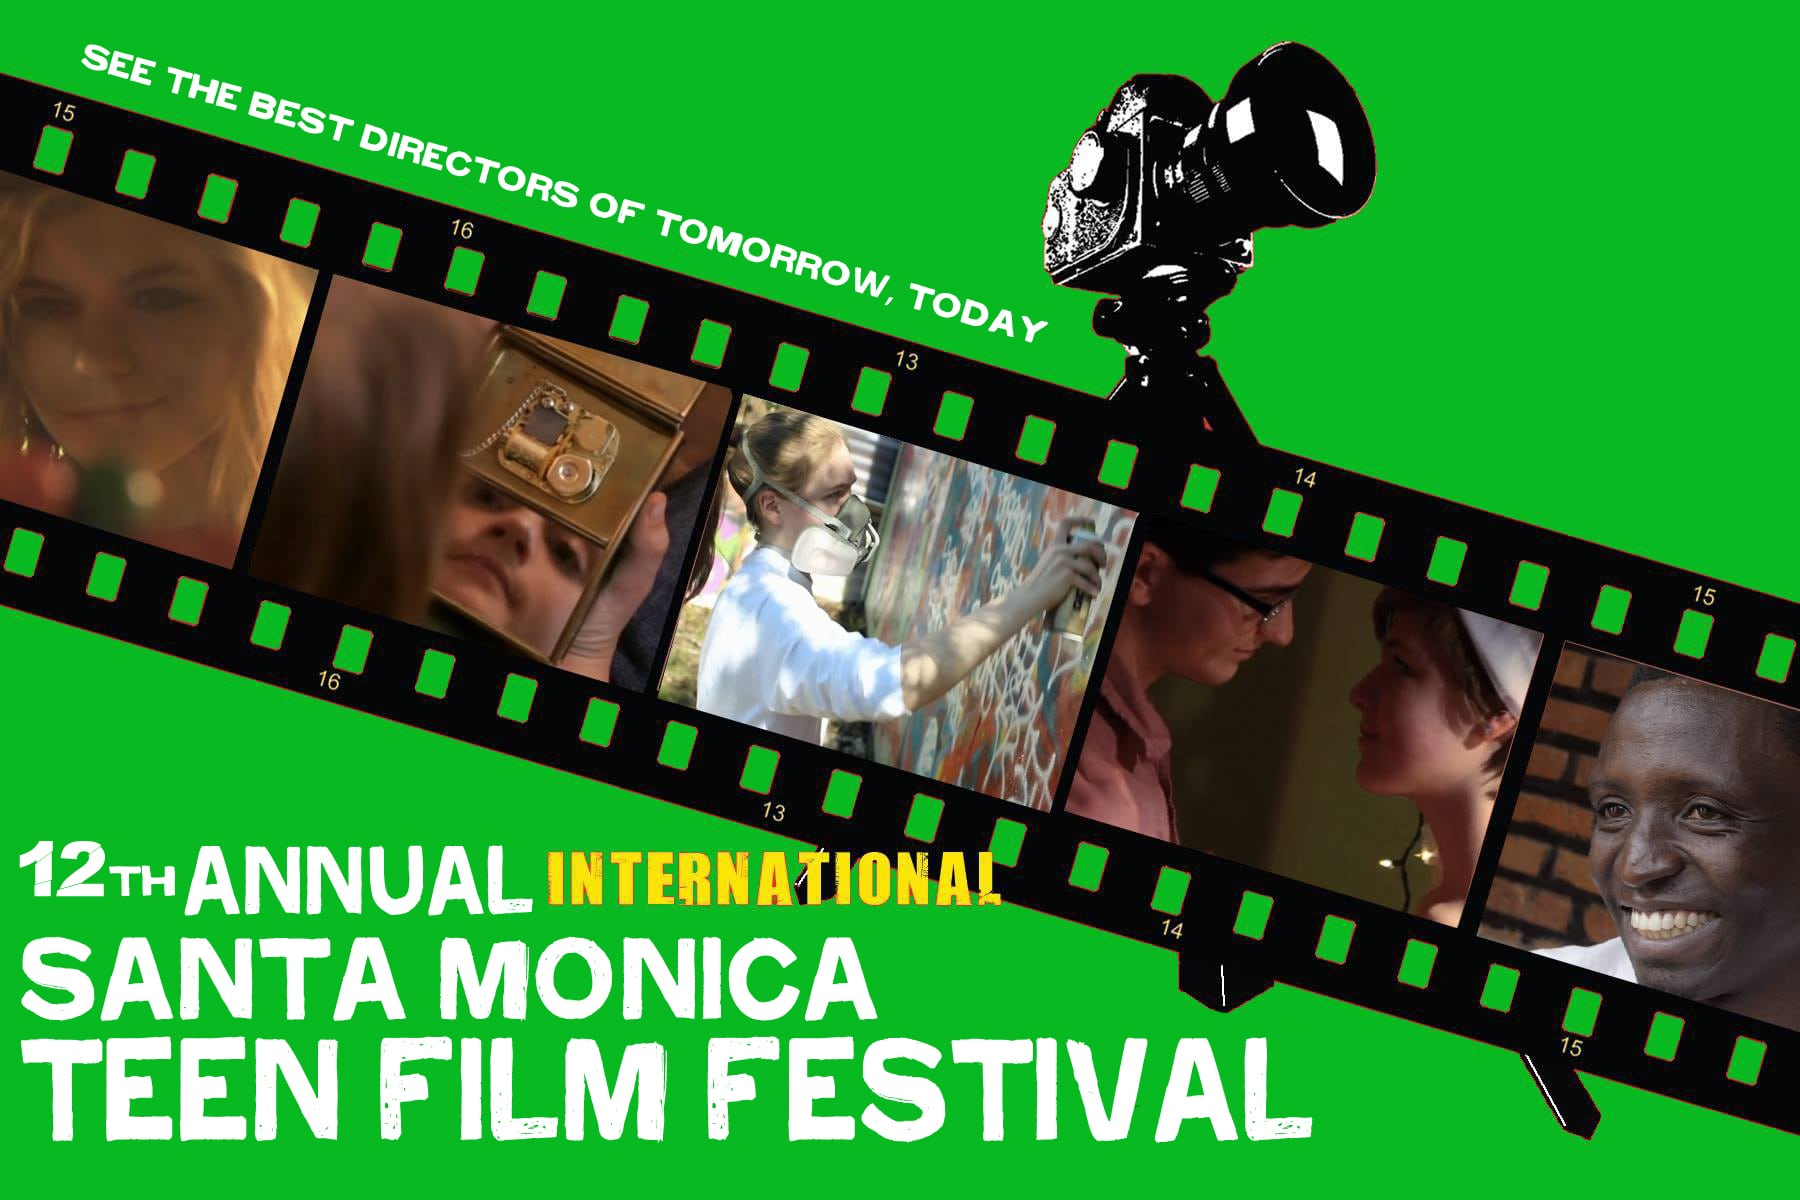 12th Annual Santa Monica International Teen Film Festival